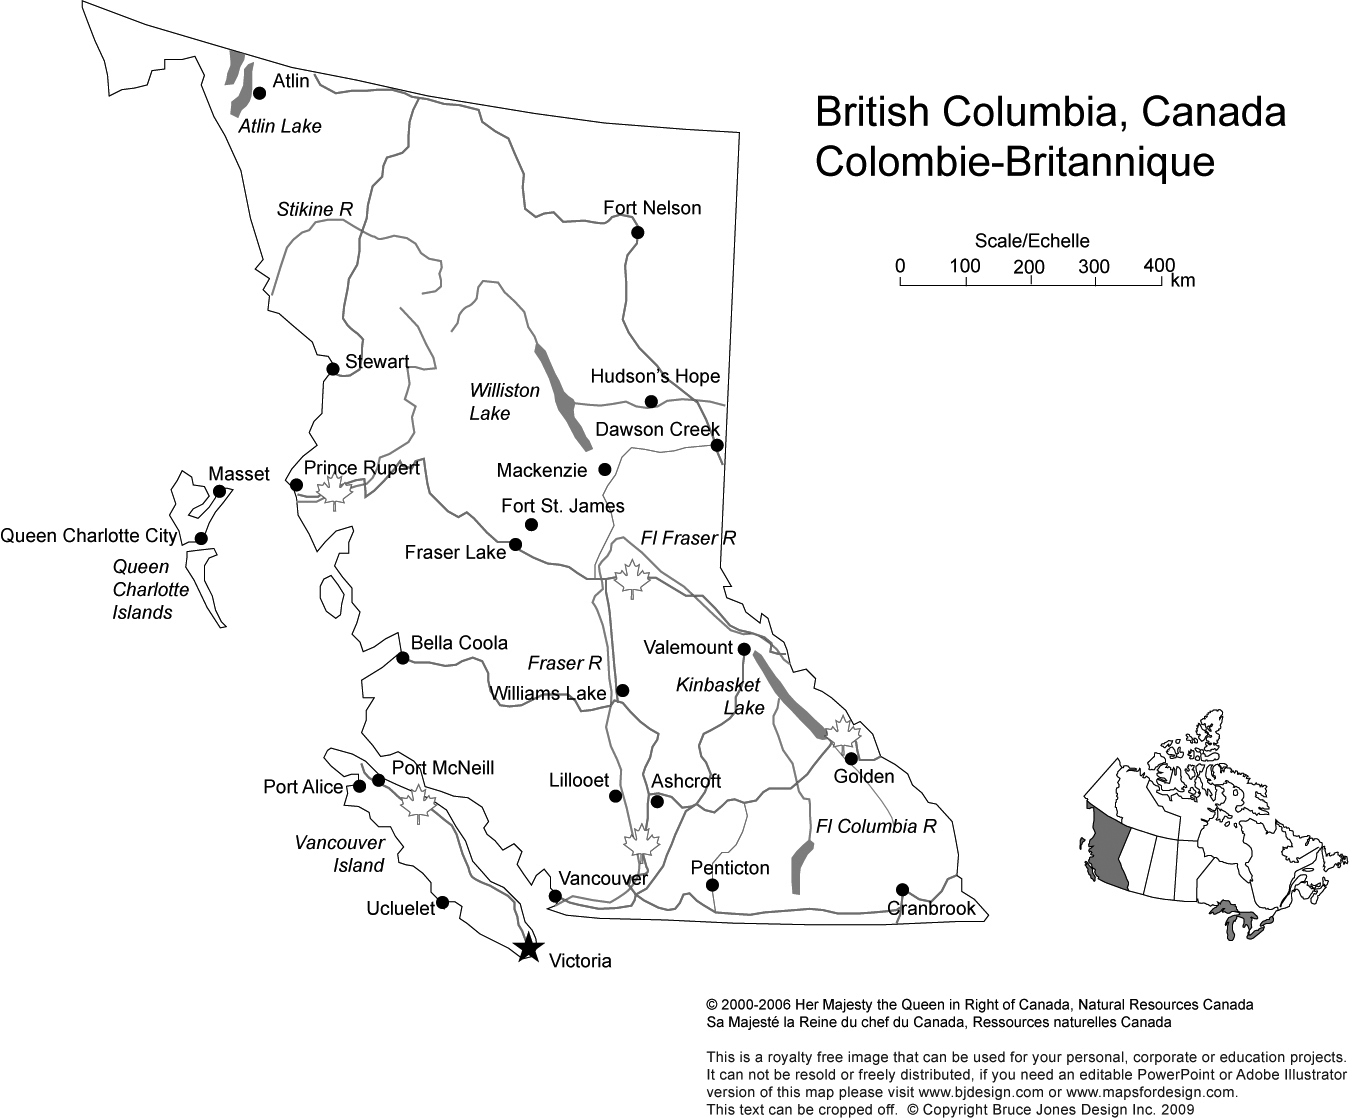 Canada and provinces printable blank maps royalty free canadian british columbia canada province state printable blank map names royalty free gumiabroncs